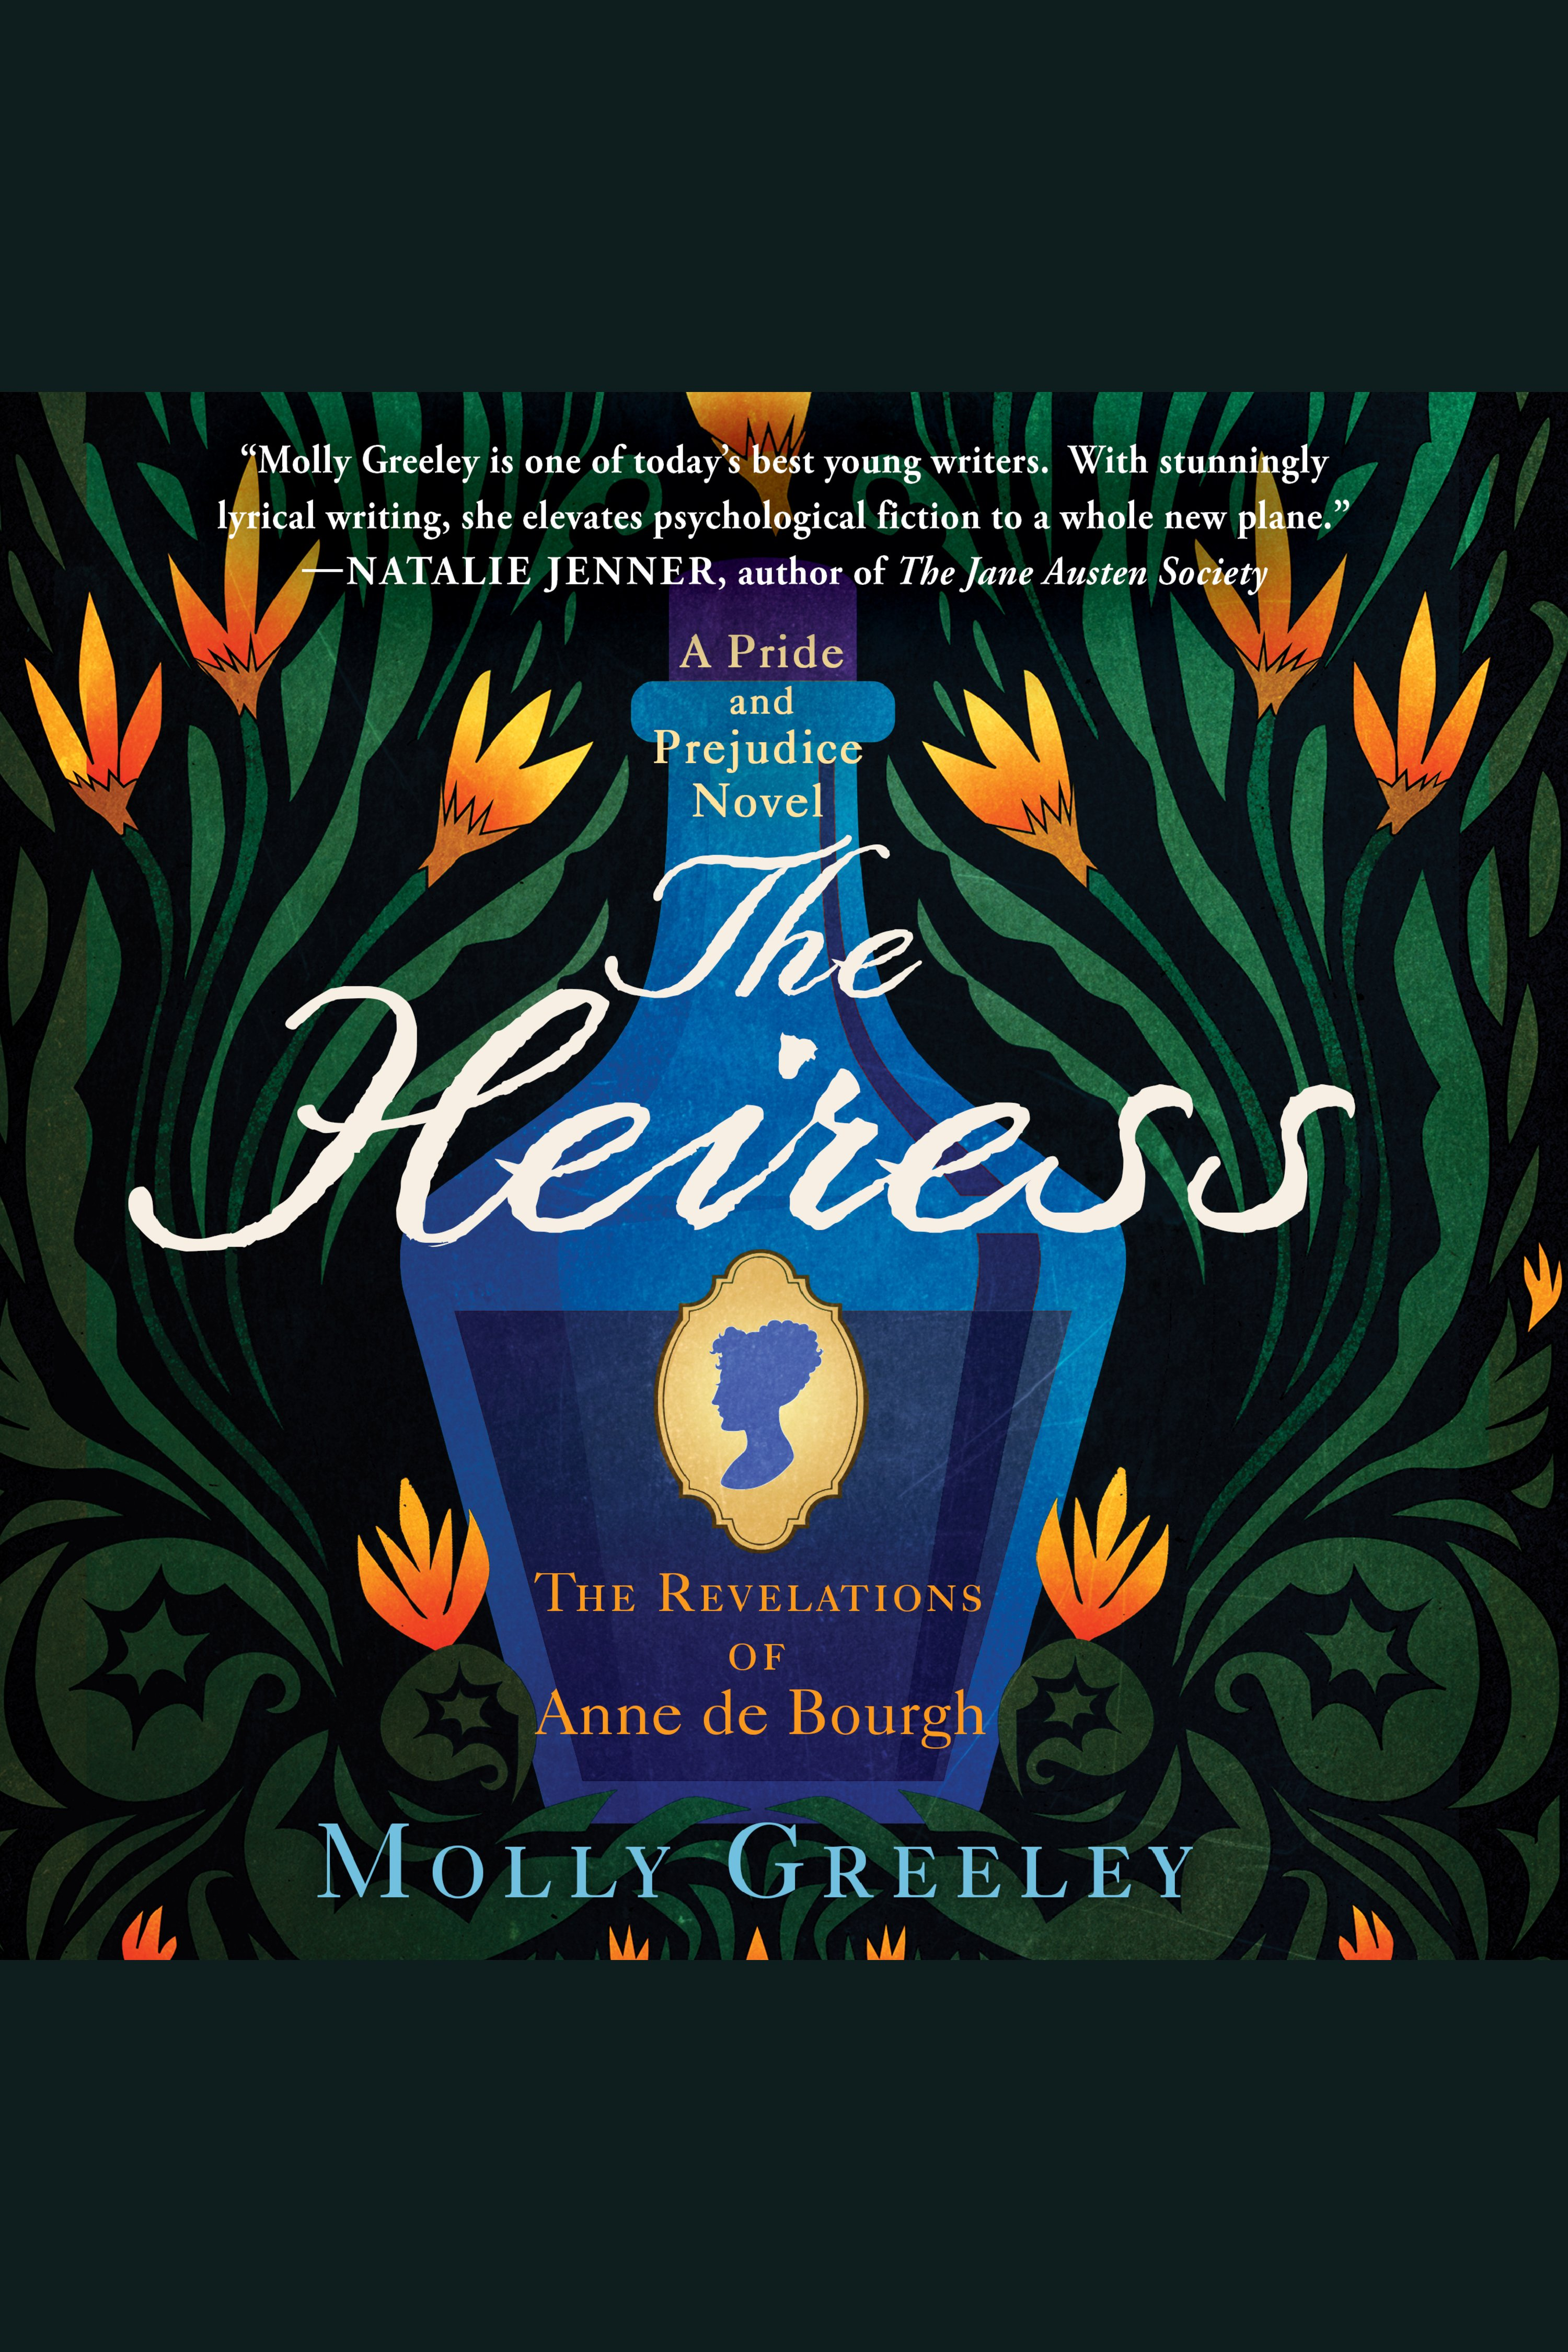 Heiress, The The Revelations of Anne de Bourgh